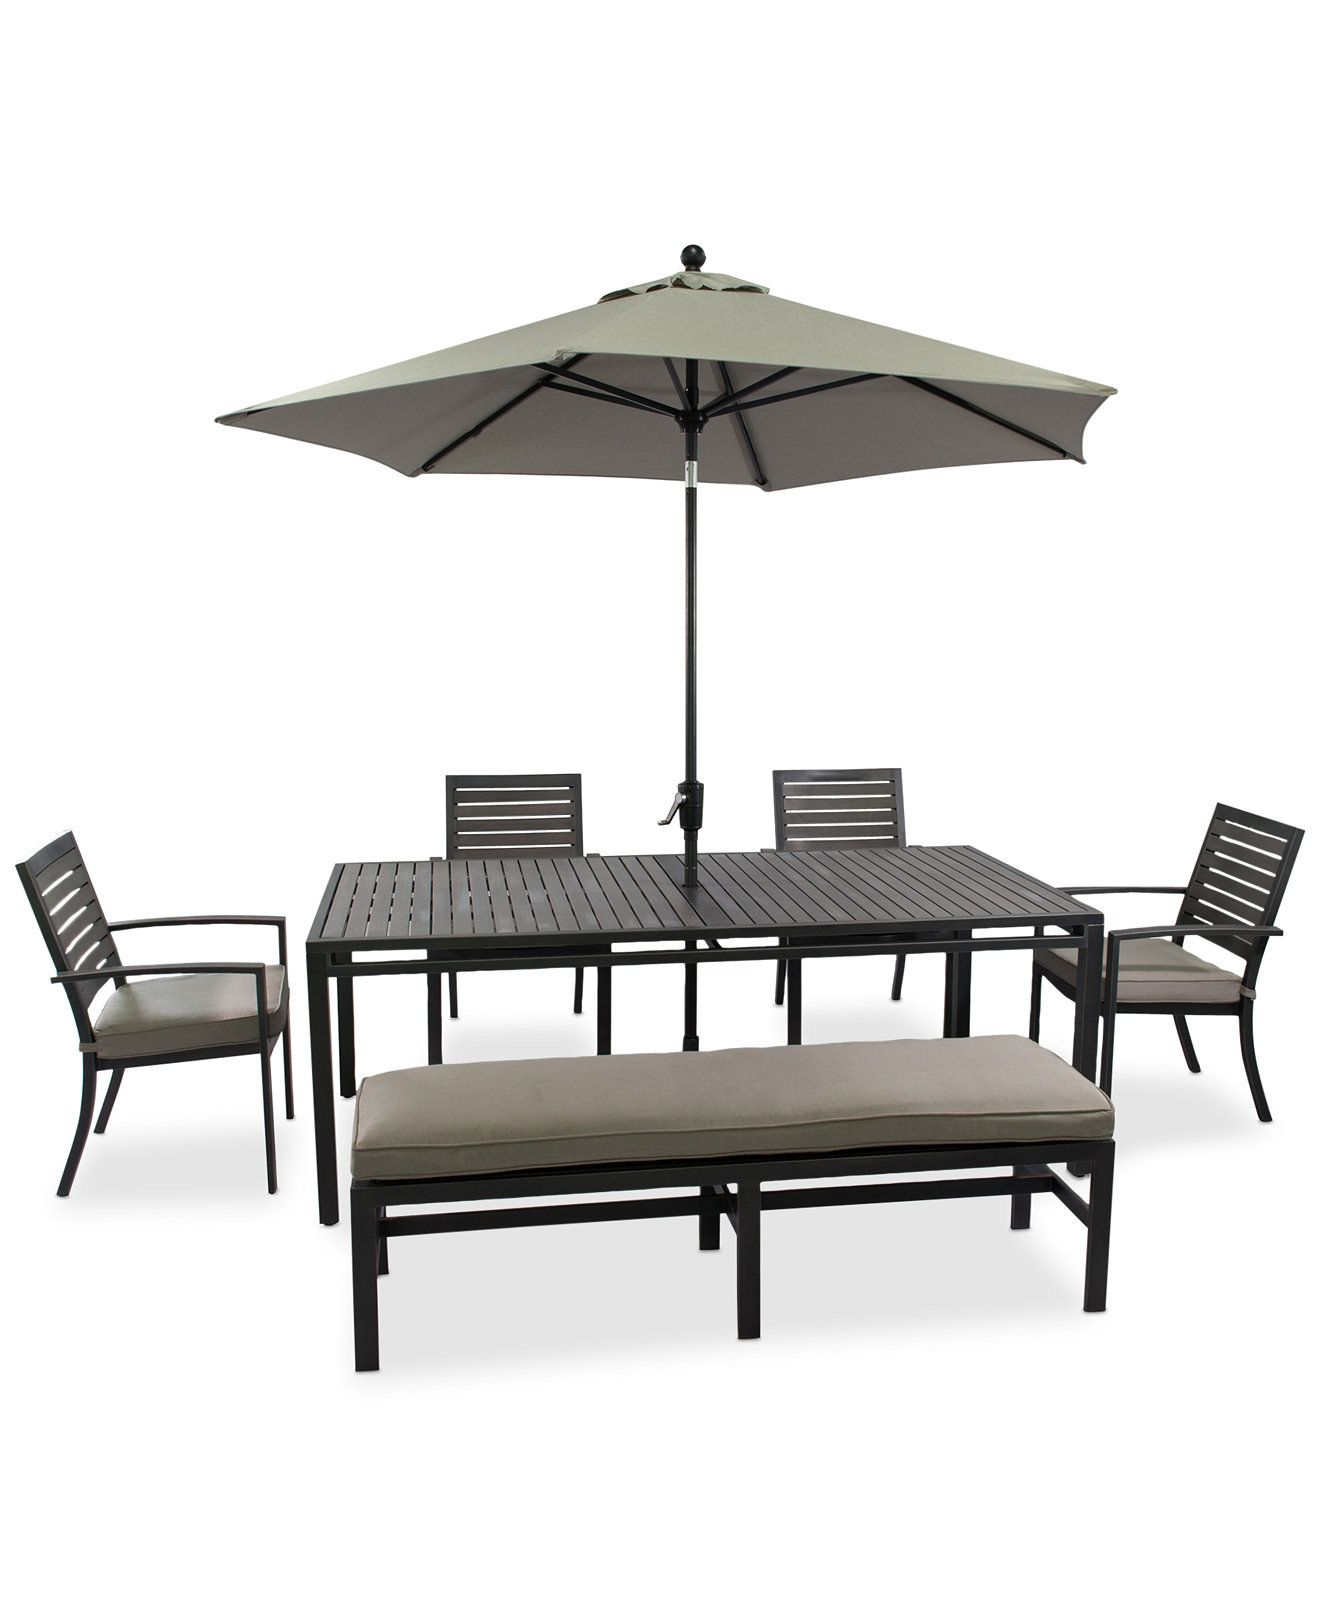 Marlough Outdoor 6 Piece Dining Set 84x42 Rectangular Table 4